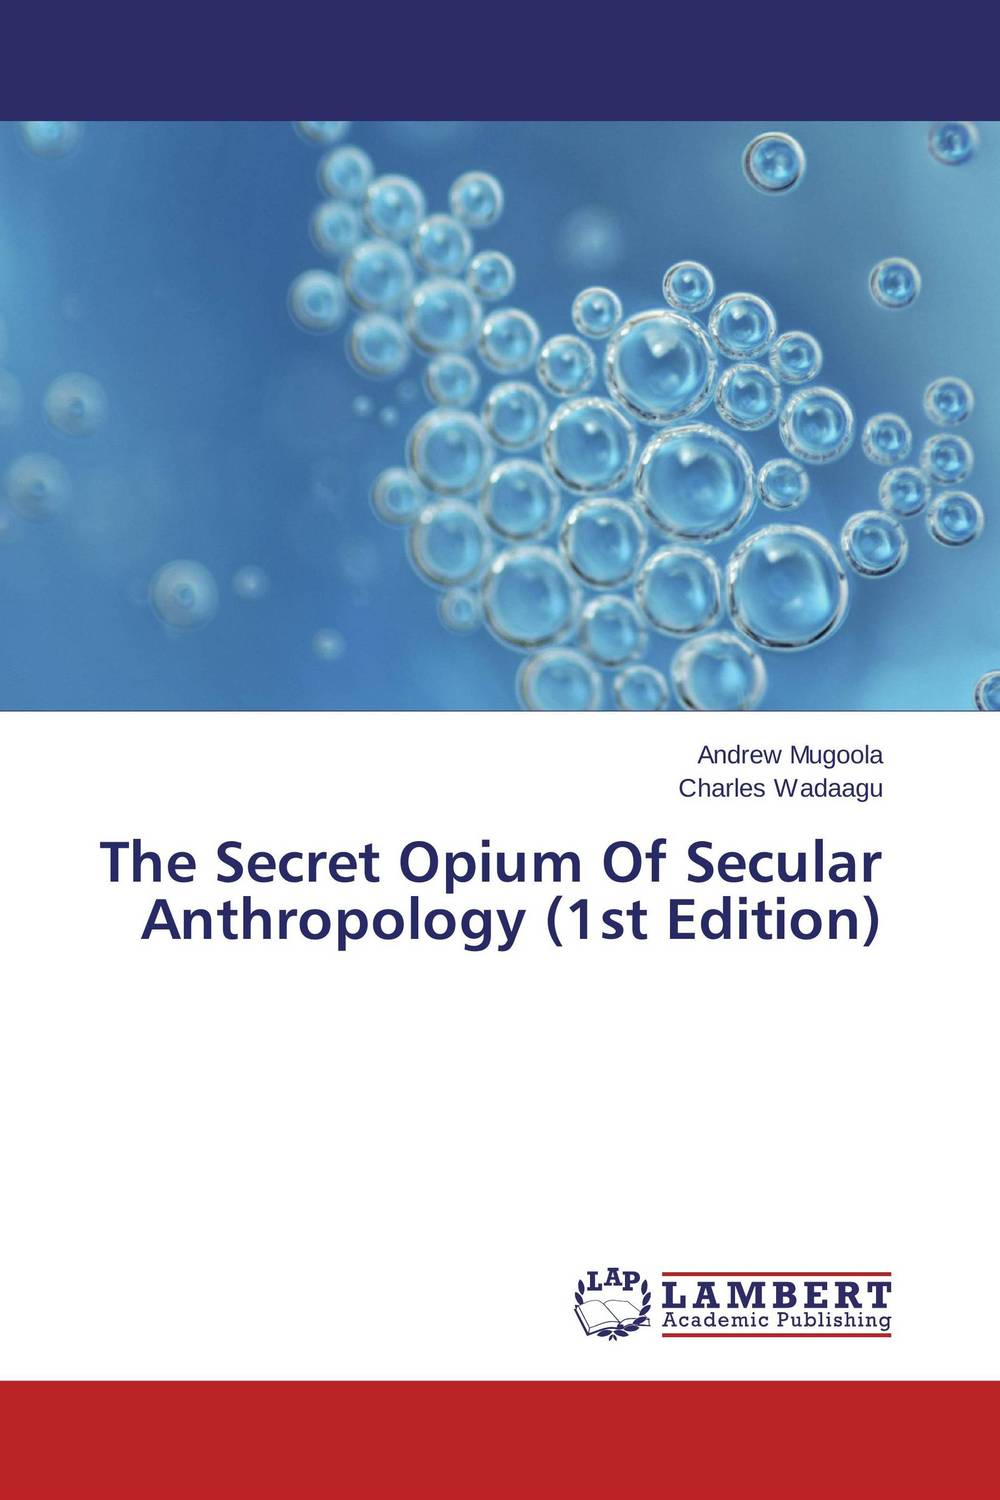 The Secret Opium Of Secular Anthropology (1st Edition) scientific and mythological ways of knowing in anthropology